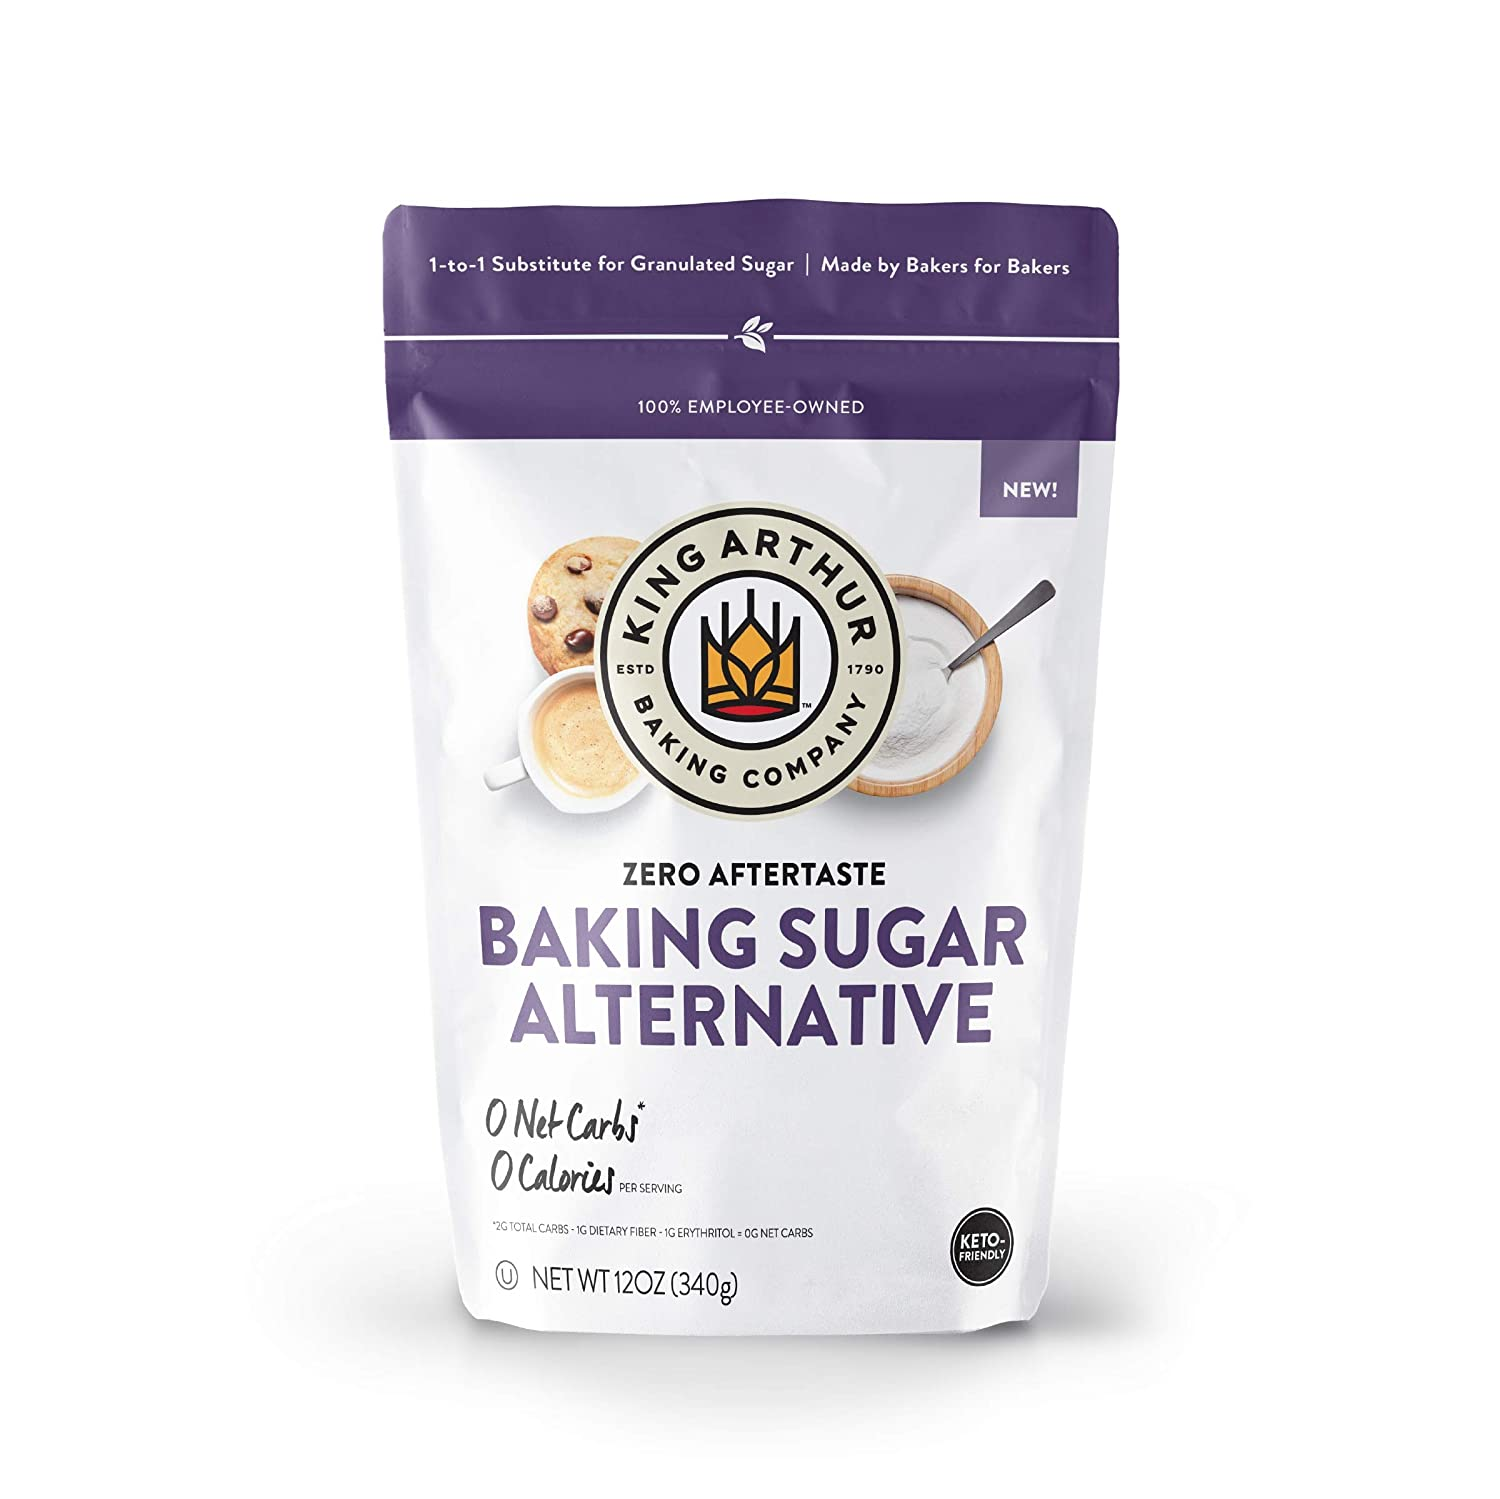 King Arthur, Baking Sugar Alternative, Made with Plant-Based Ingredients, Keto-Friendly, 1-to-1 Substitute for Granulated Sugar, 12 Ounces